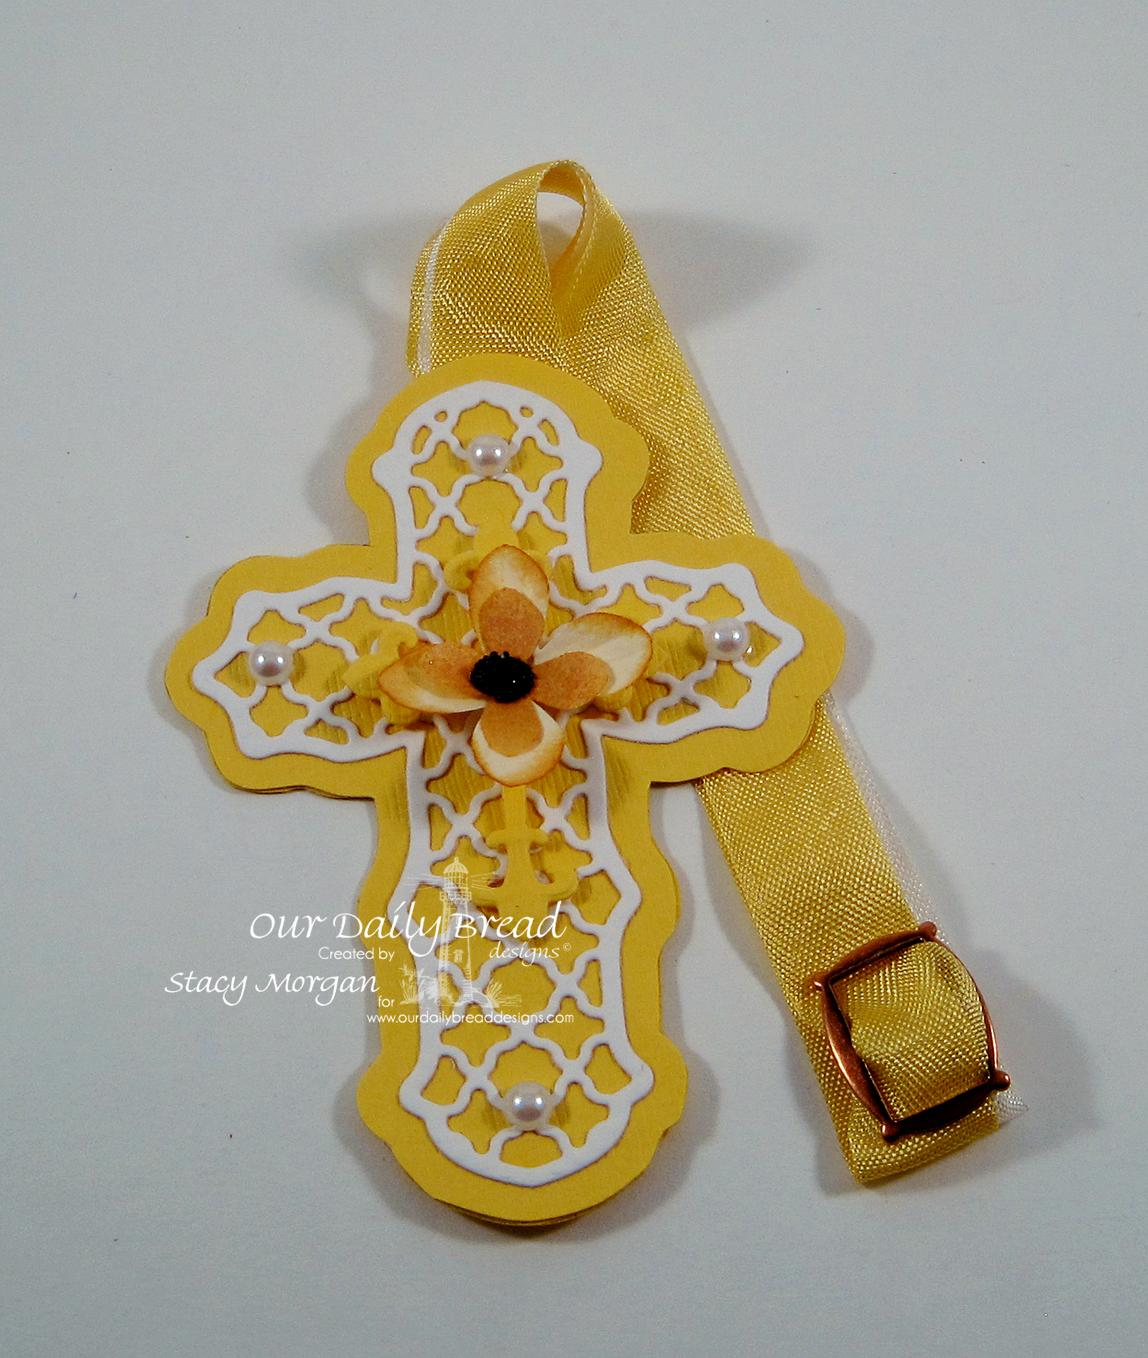 Our Daily Bread Designs Ornamental Crosses Die